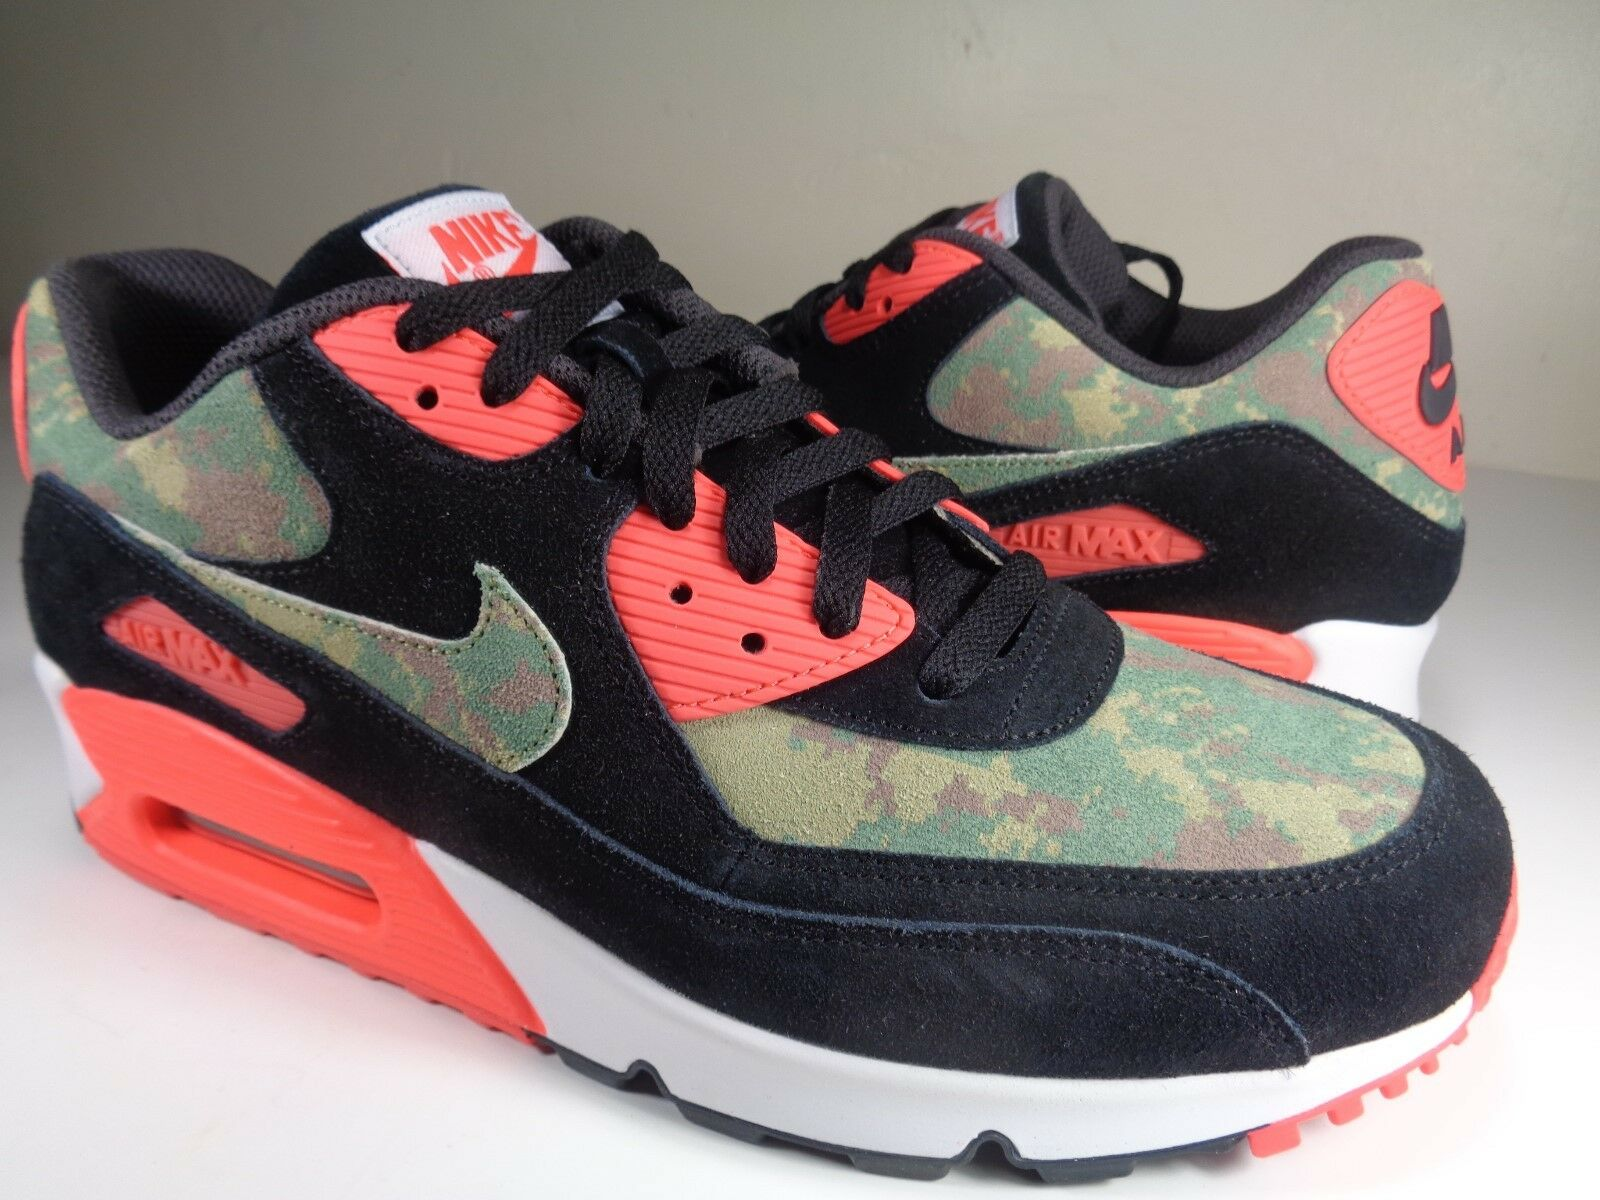 Nike Air Max 90 PRM Camo Unreleased Infrared Black White Atmos SZ 9 (700155-003)